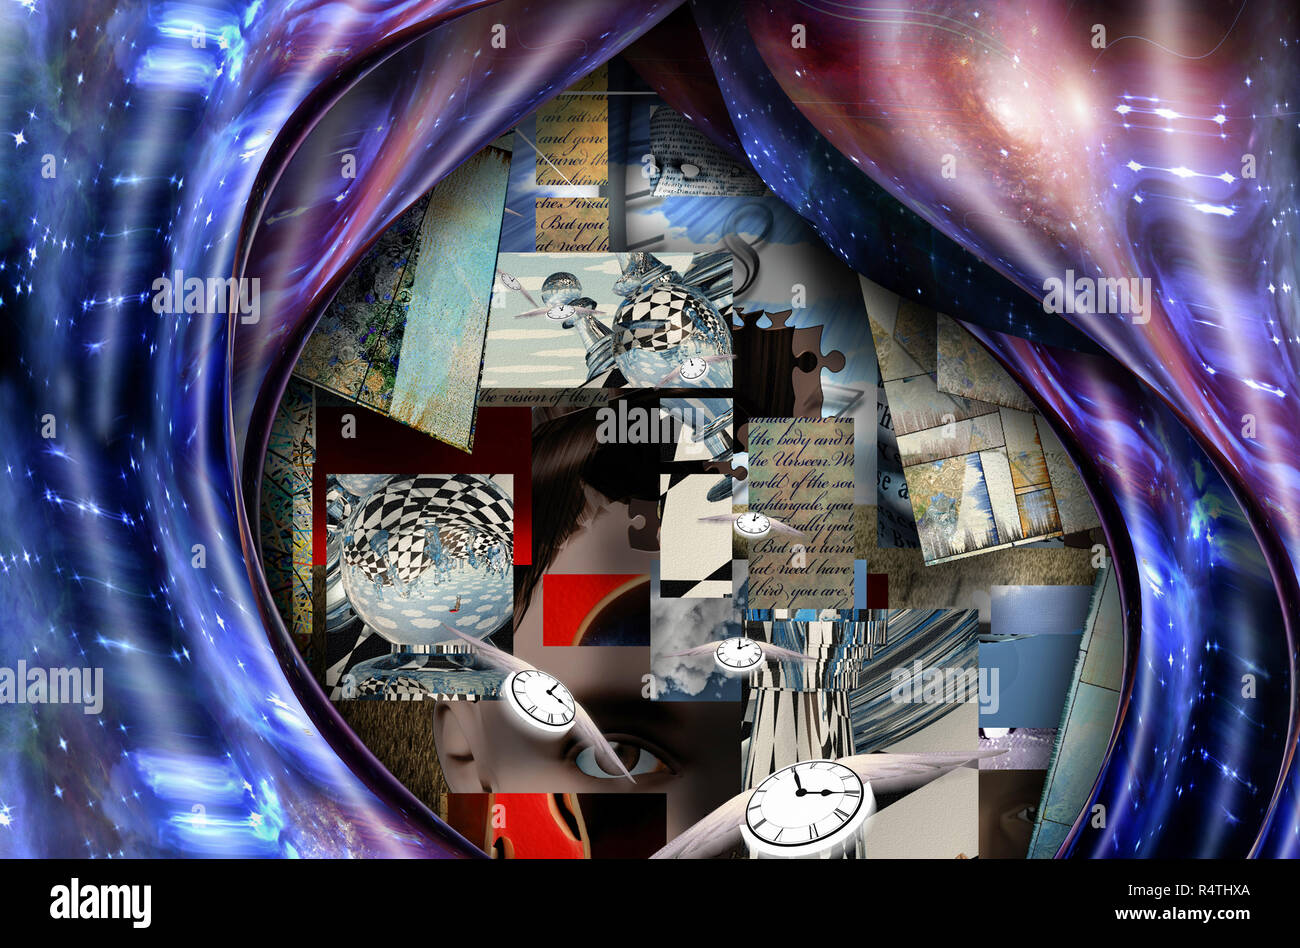 Symbolic composition. Chess pieces and warped space with vivid galaxies. Fragments of phrases from unknown poem. Winged clocks represents flow of time - Stock Image